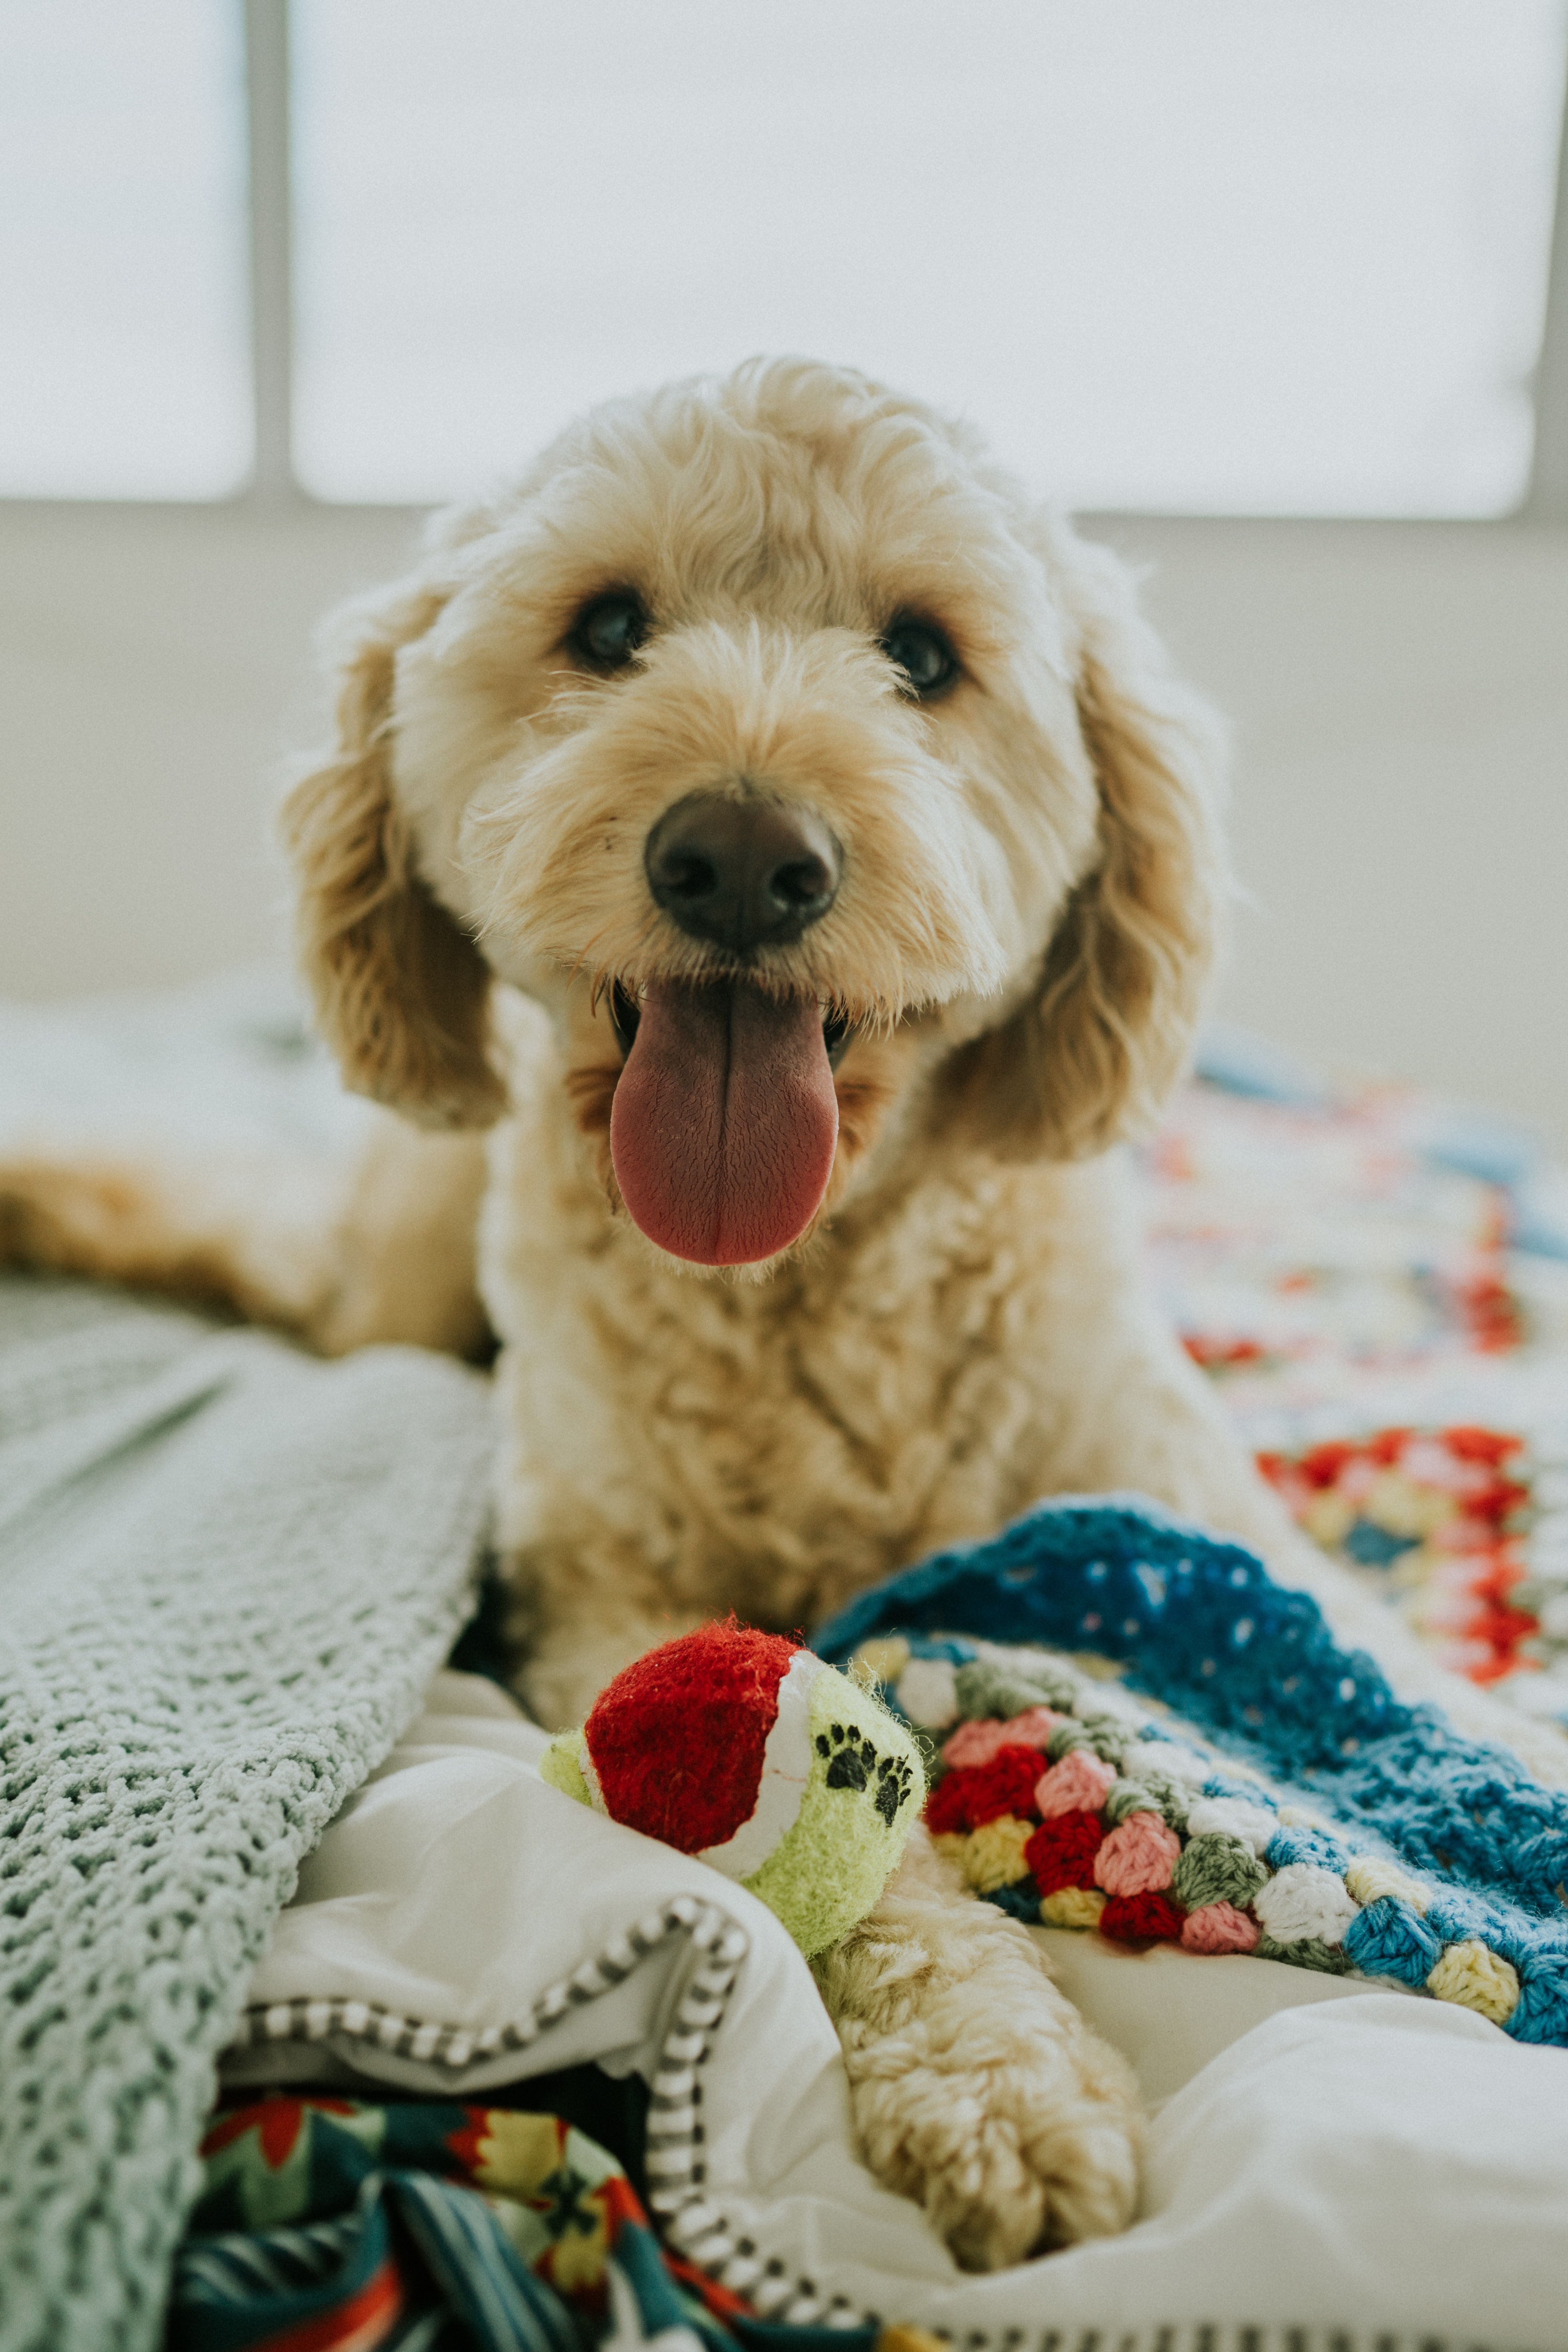 Goldendoodle on bed with ball